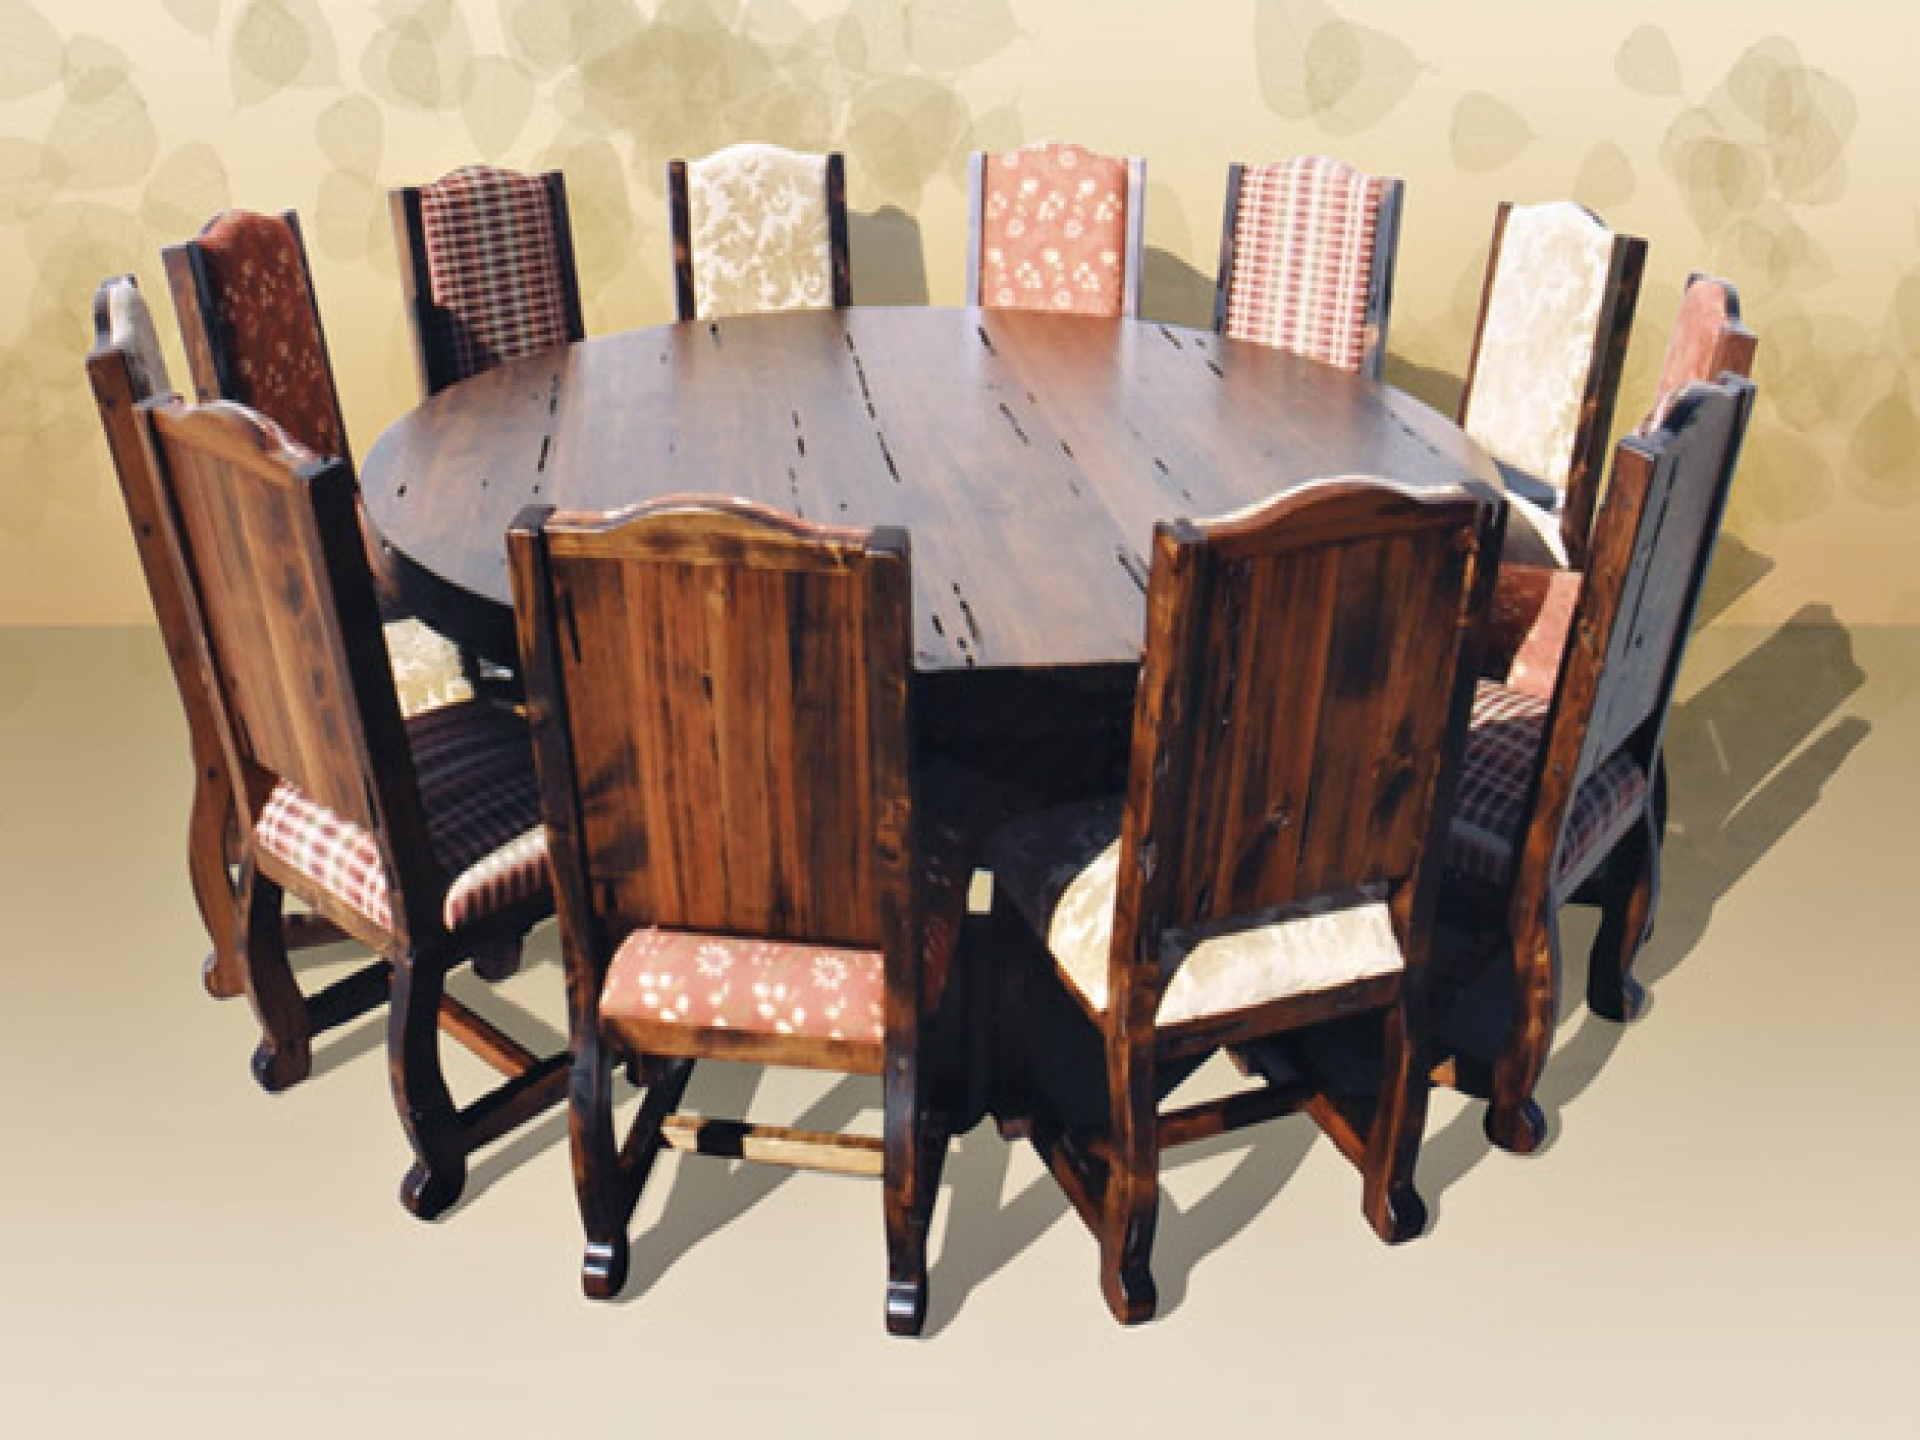 Large Dining Room Table Seats 10 Dining Room Table Seats 12 For Big Family Homesfeed